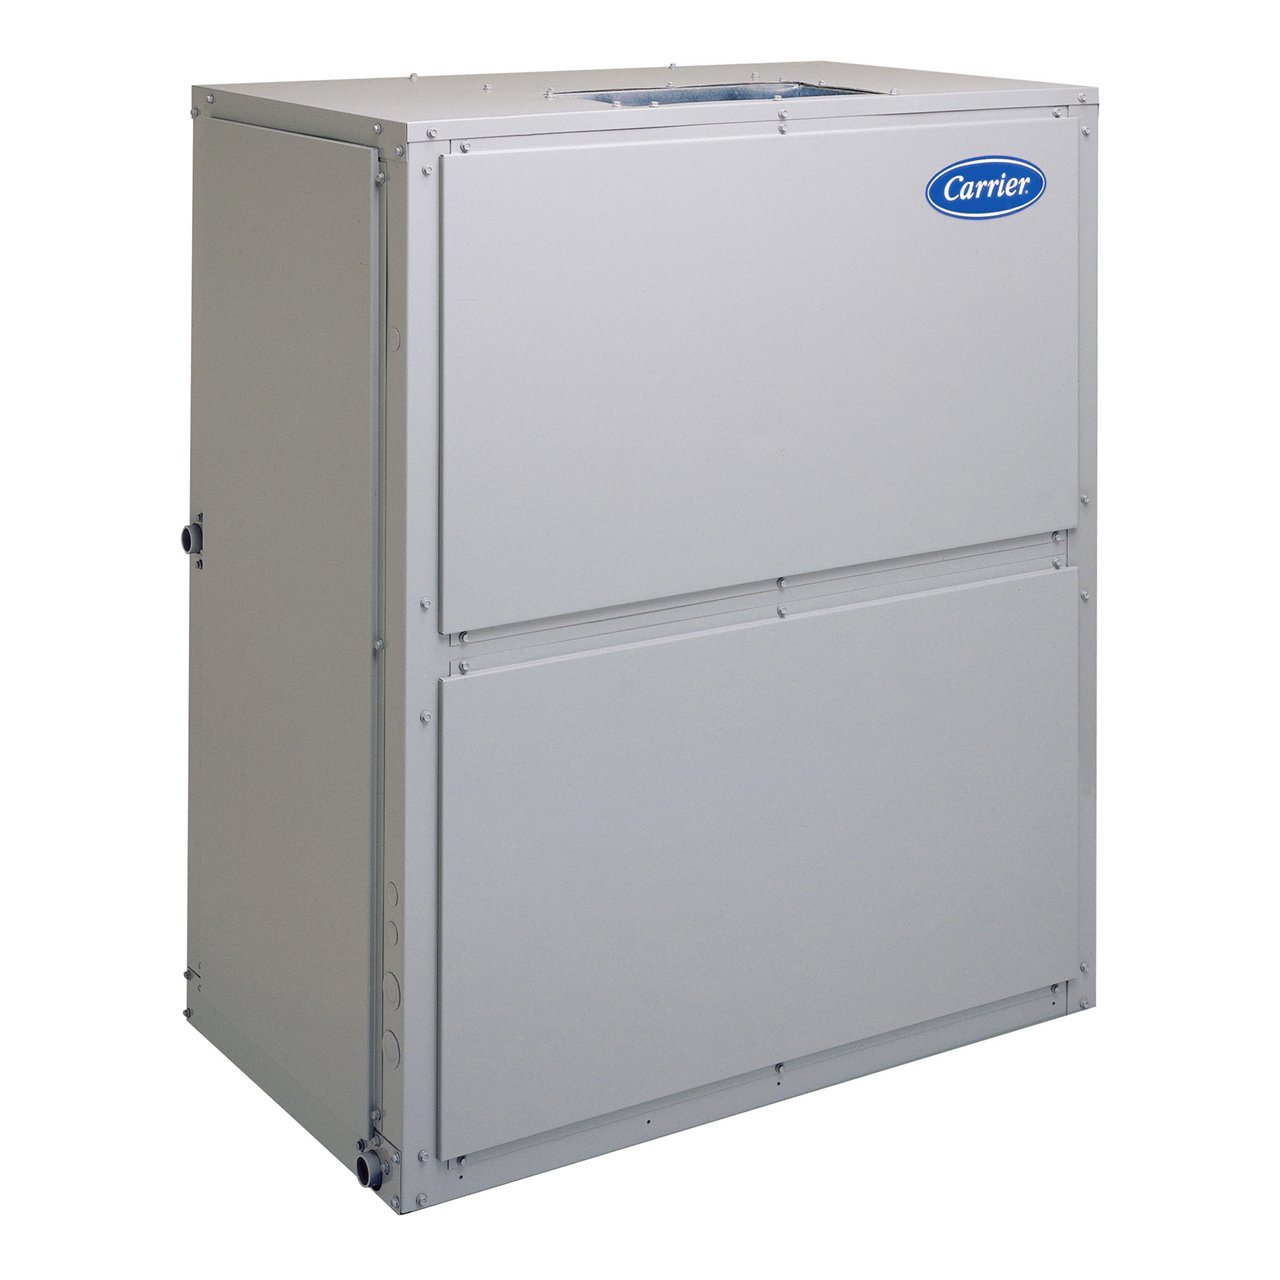 carrier-40rus-chilled-water-packaged-air-handling-unit